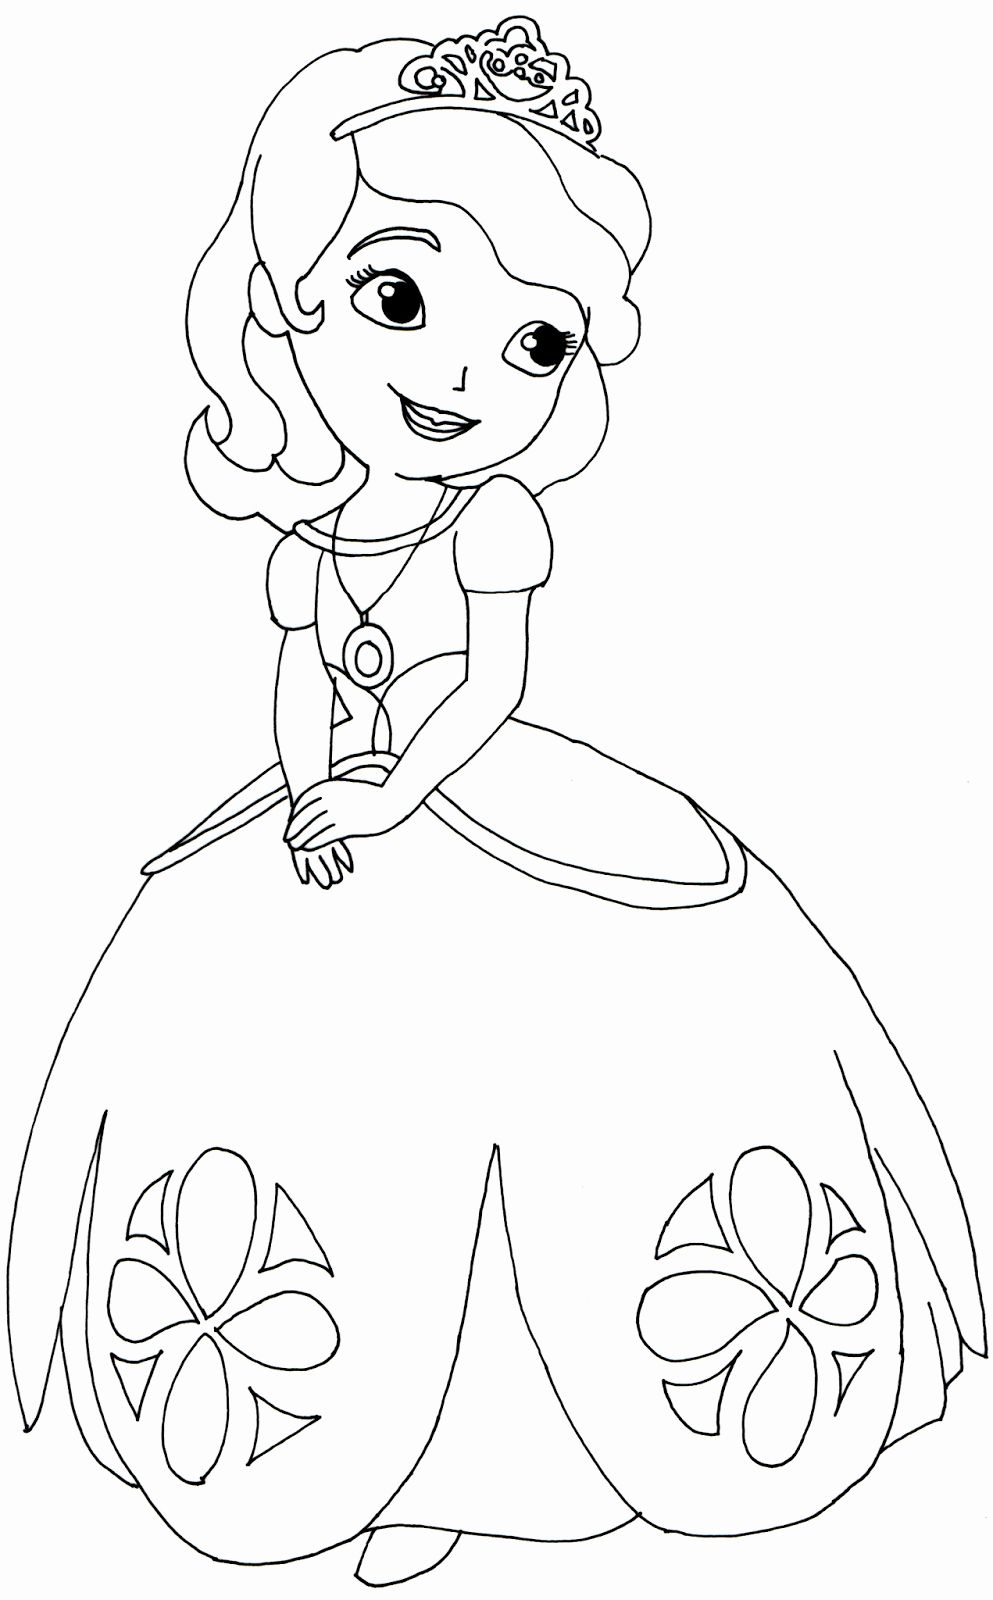 Sofia The First Coloring Book Best Of Sofia The First Coloring